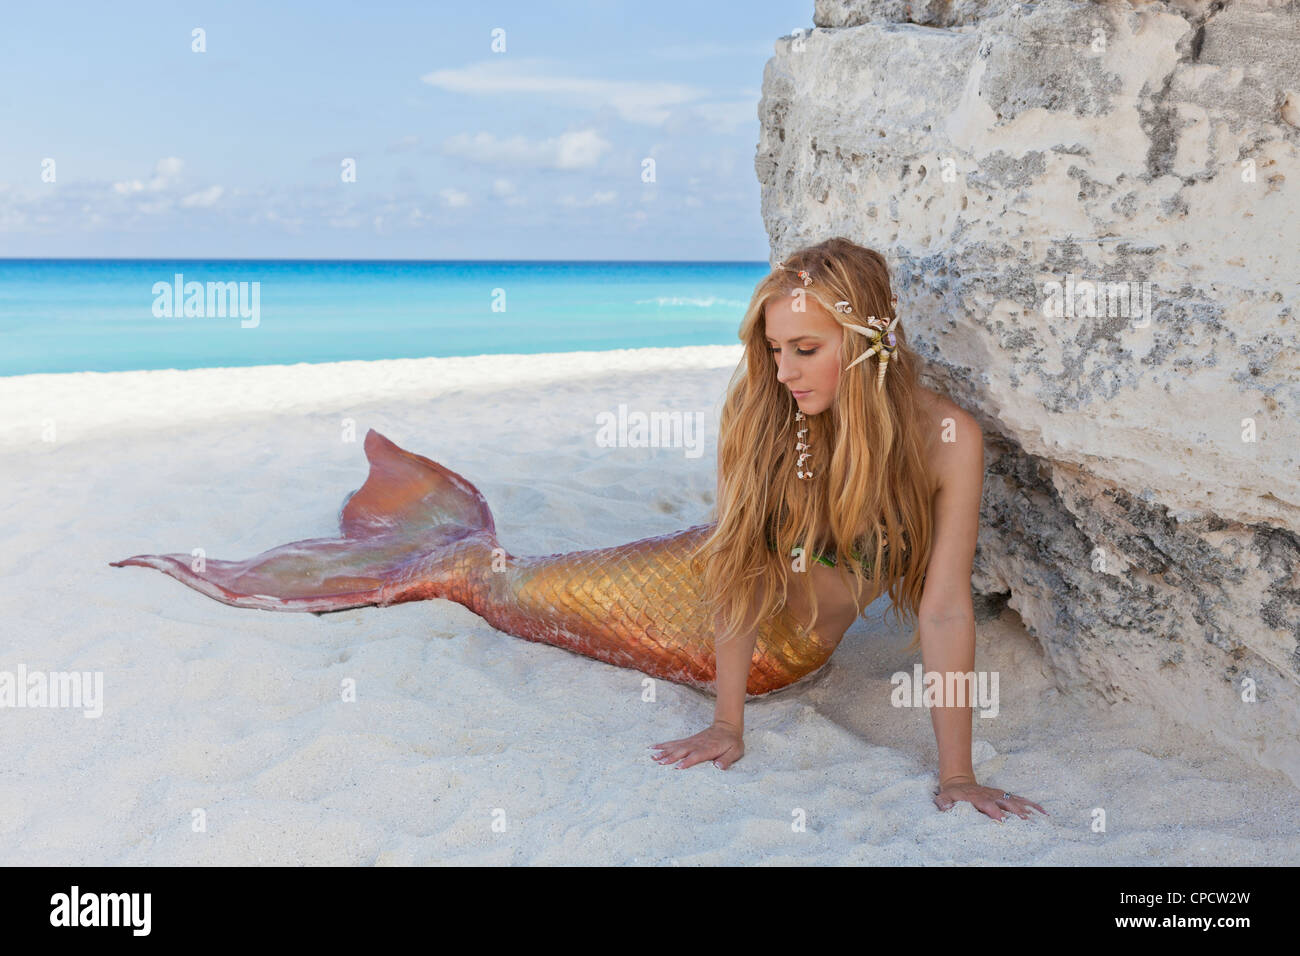 Young blond mermaid laying on the beach in Cancun, Mexico - Stock Image